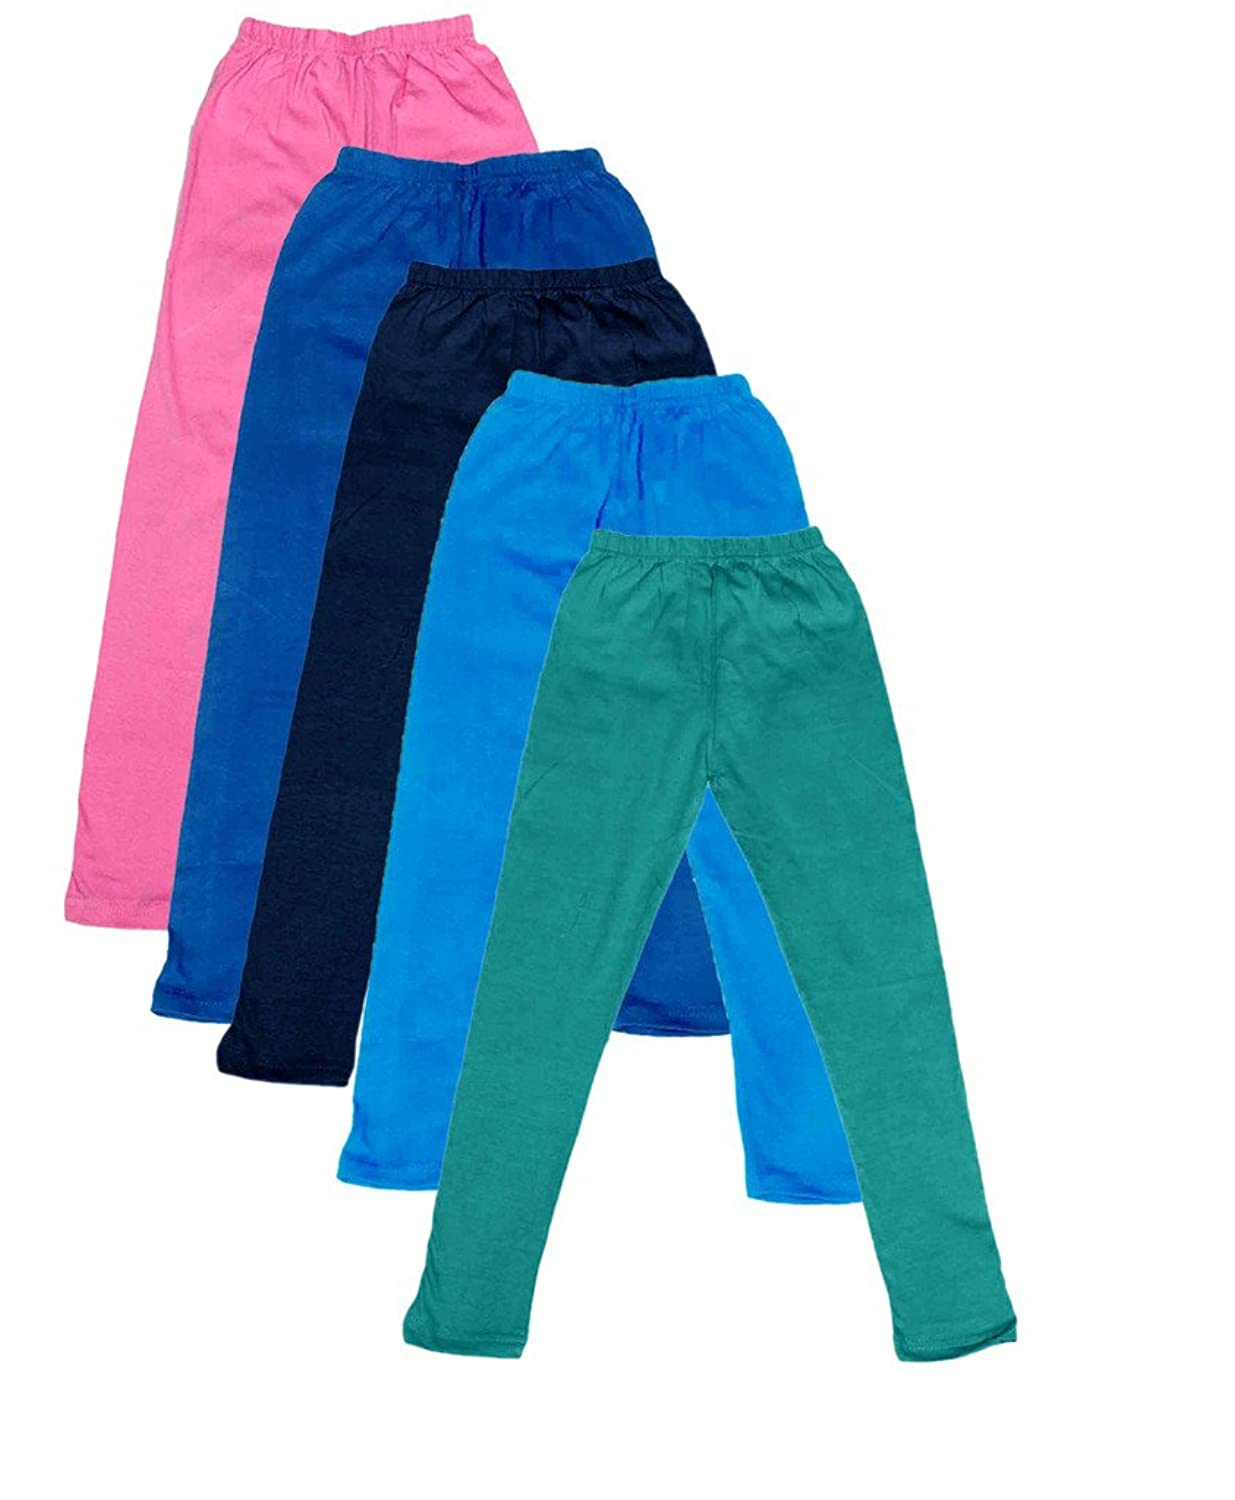 -Multiple Colors-3-5 Years Pack of 6 Indistar Little Girls Cotton Full Ankle Length Solid Leggings